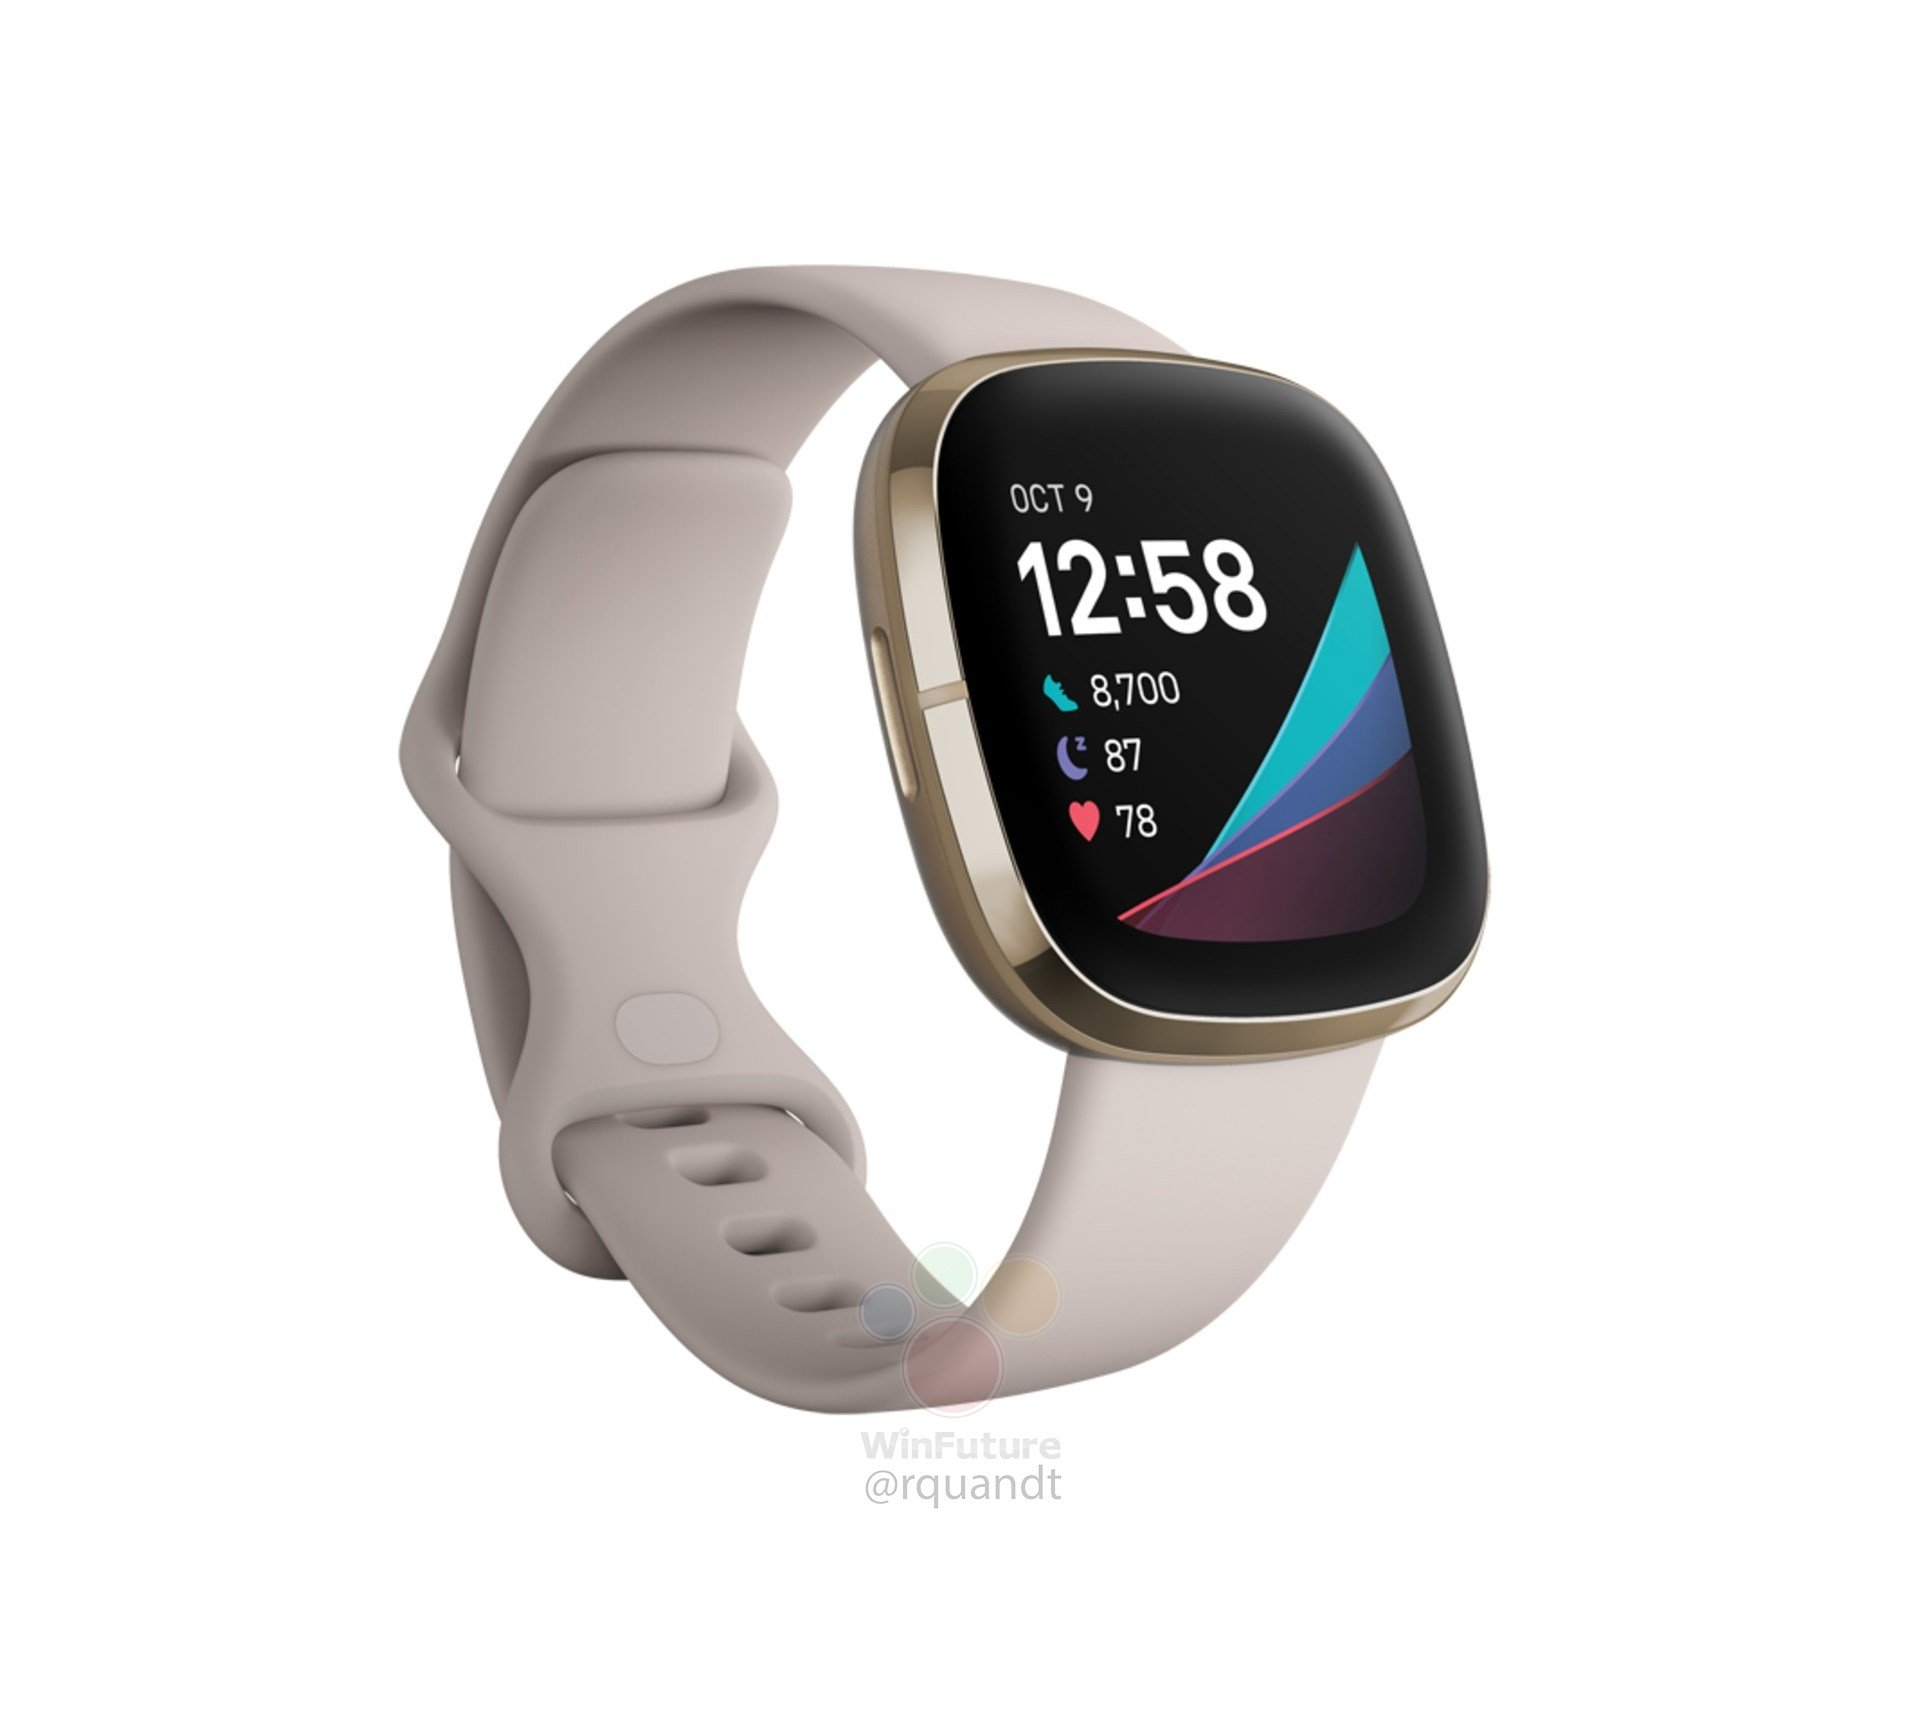 Fitbit Versa 3 and Fitbit Sense smartwatches revealed in leaked images